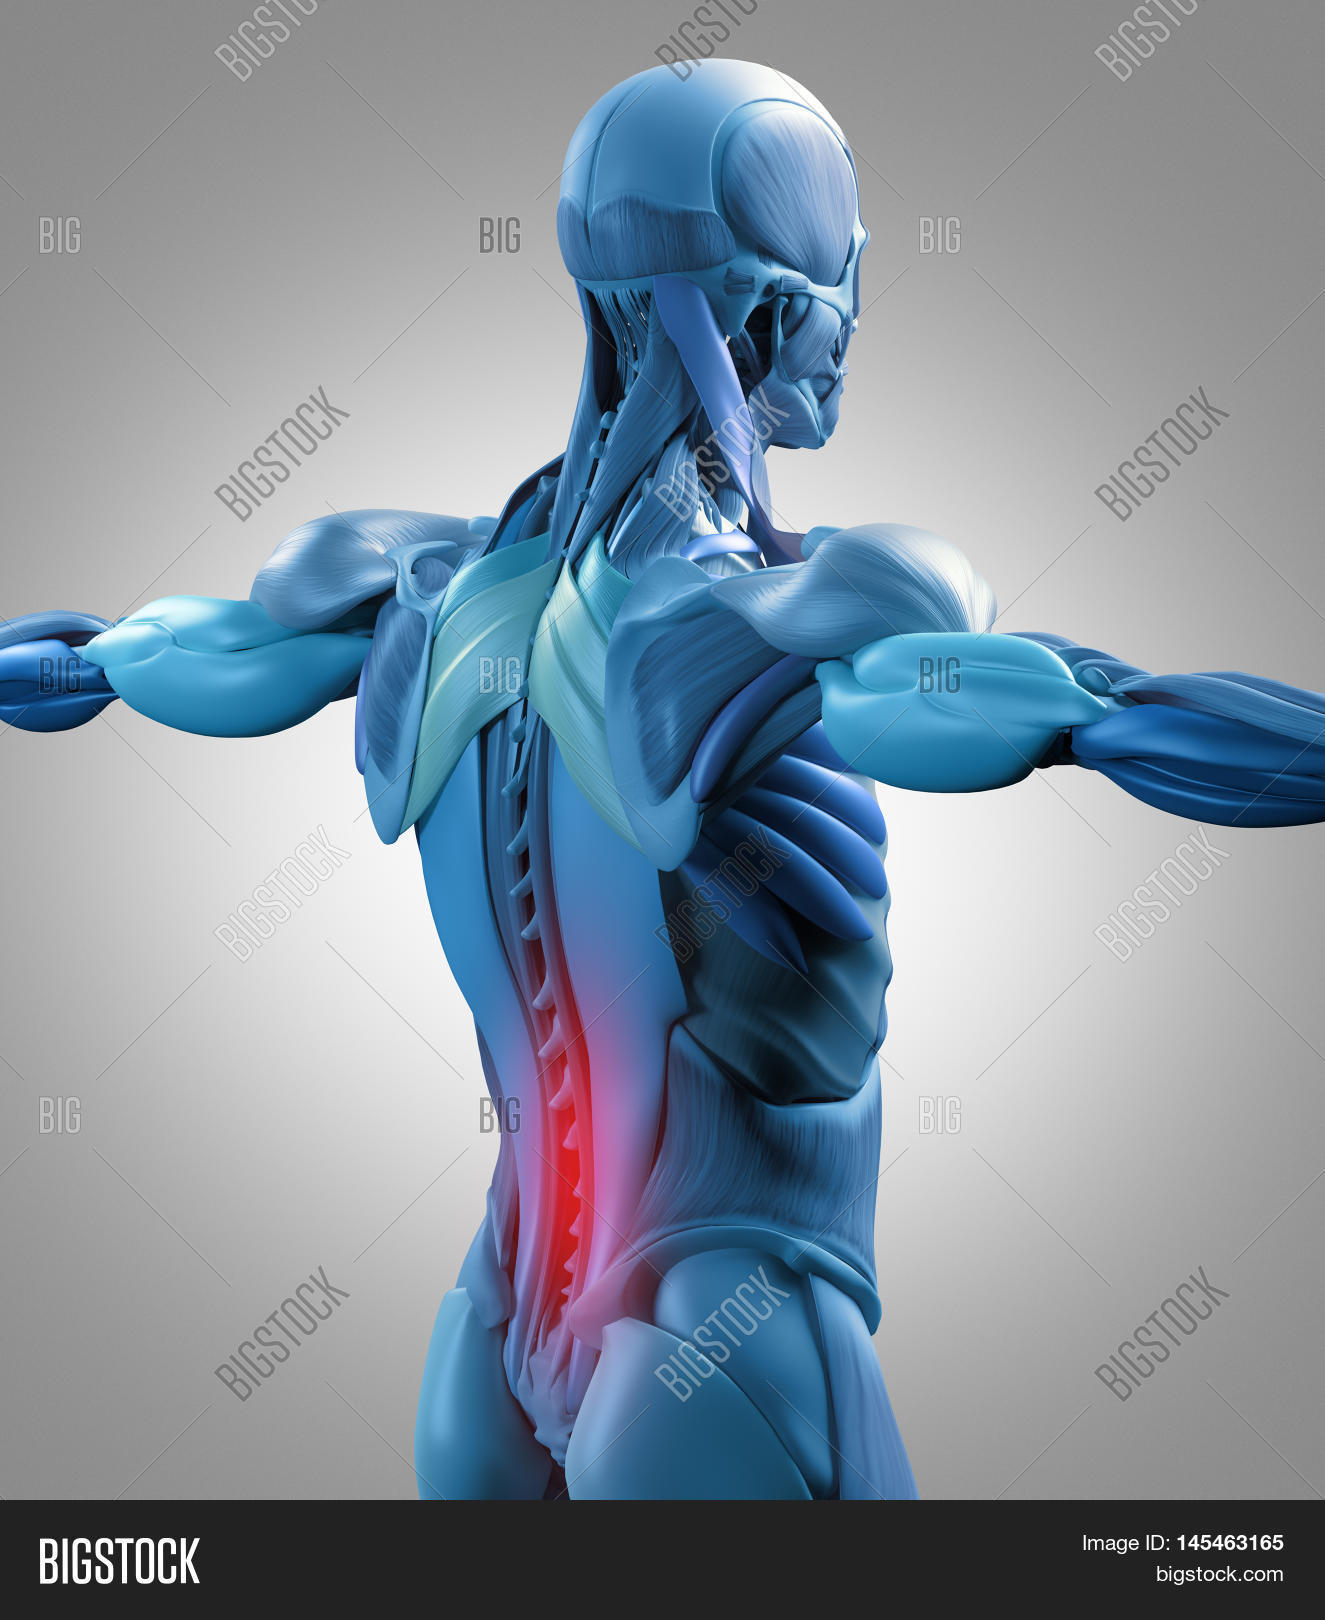 Human Anatomy Muscle Image Photo Free Trial Bigstock